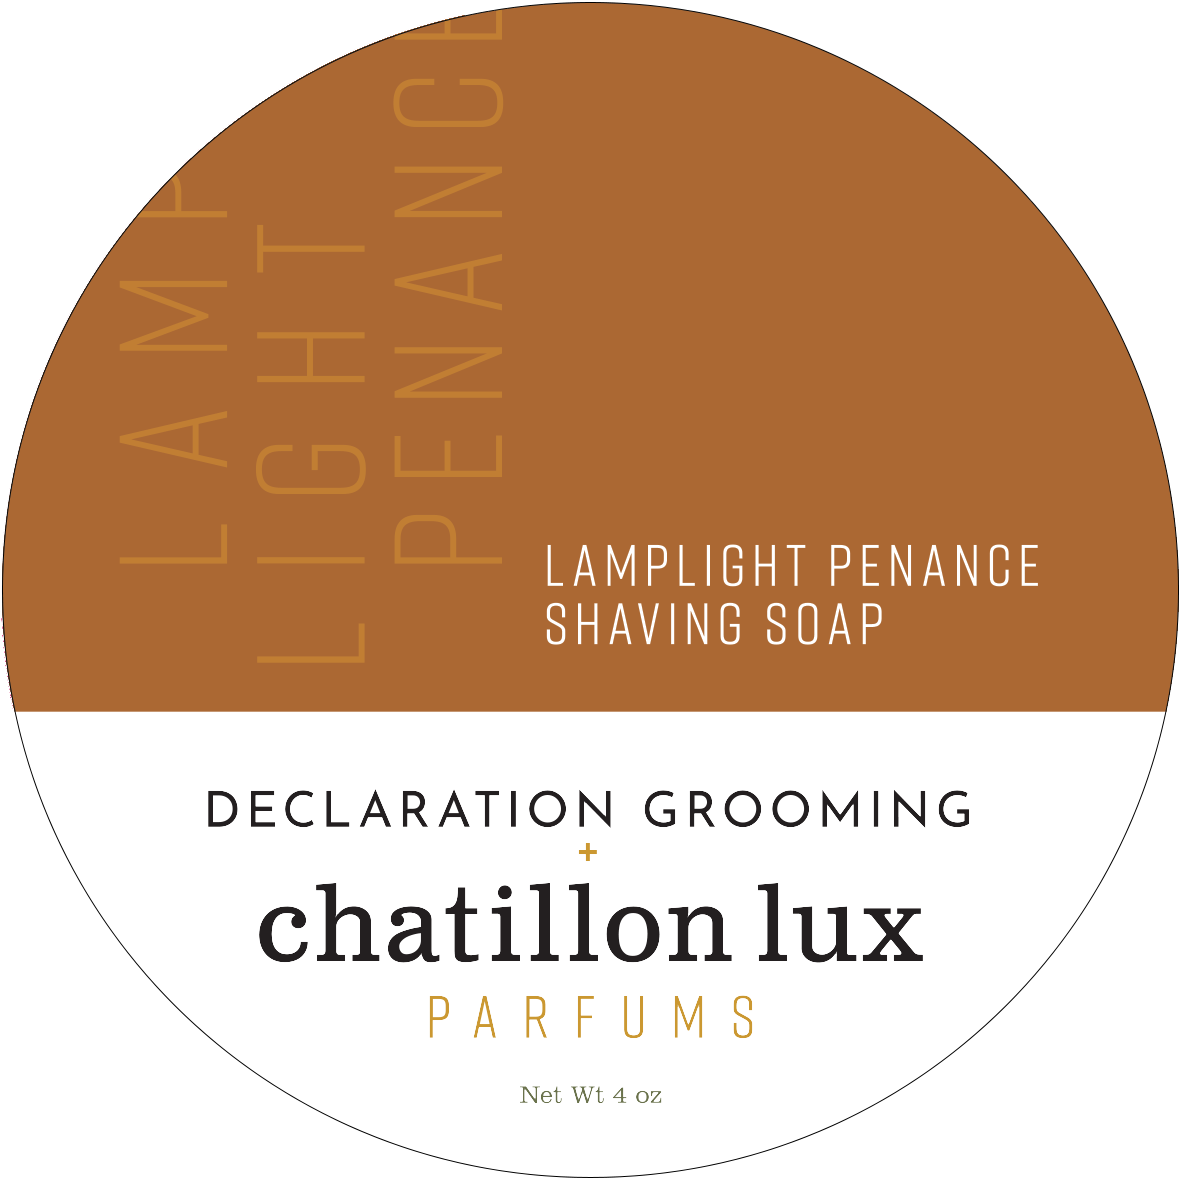 Chatillon Lux/Declaration Grooming - Lamplight Penance - Soap image